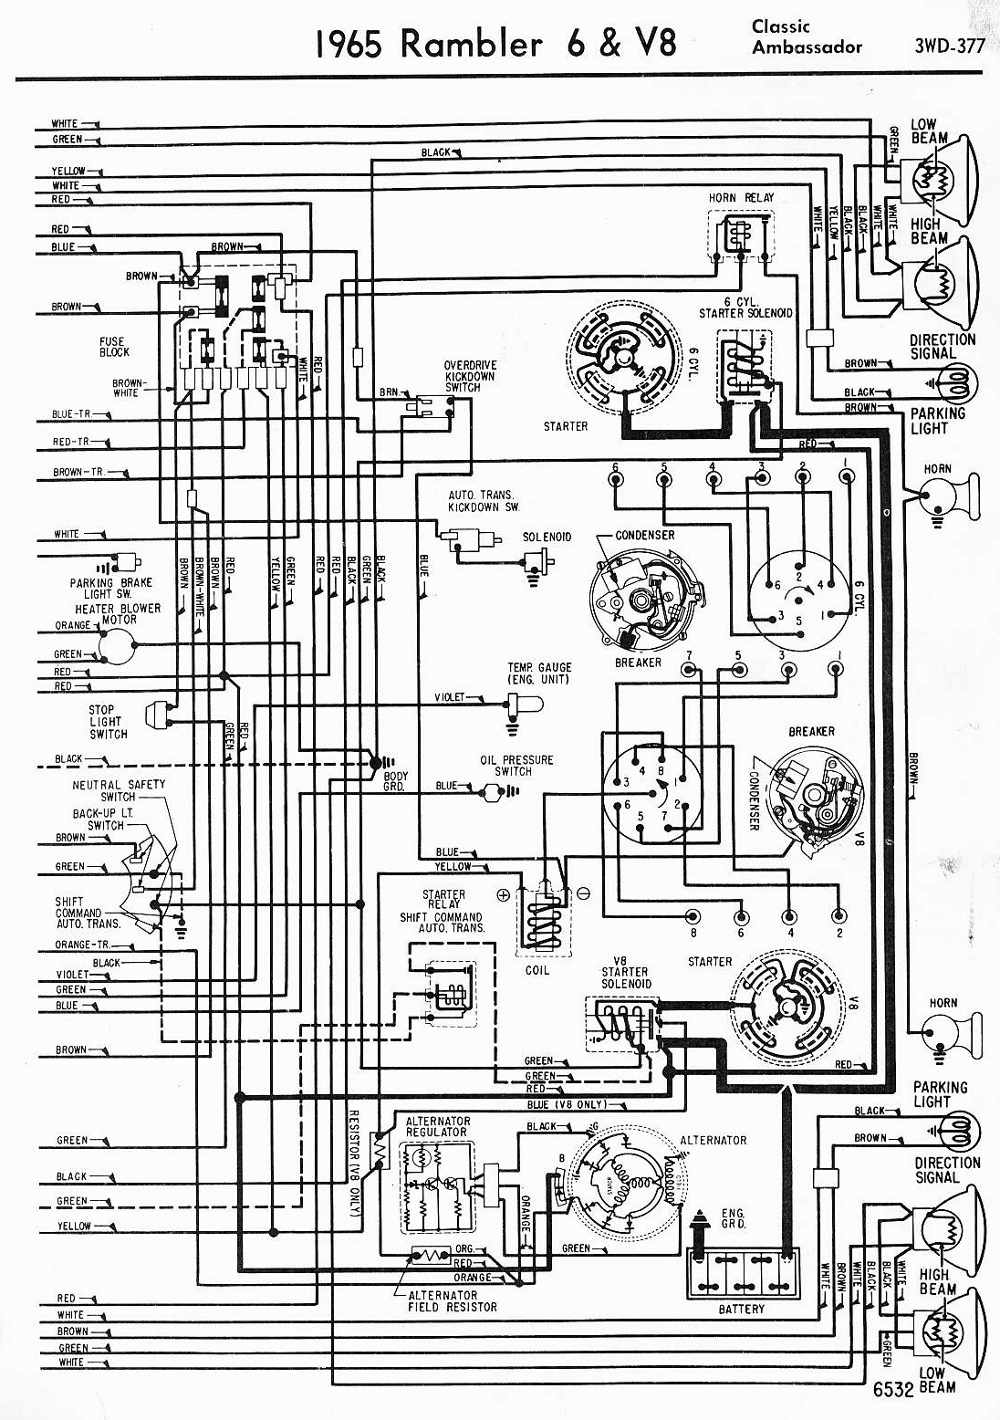 mk6 transit starter motor wiring diagram. Black Bedroom Furniture Sets. Home Design Ideas